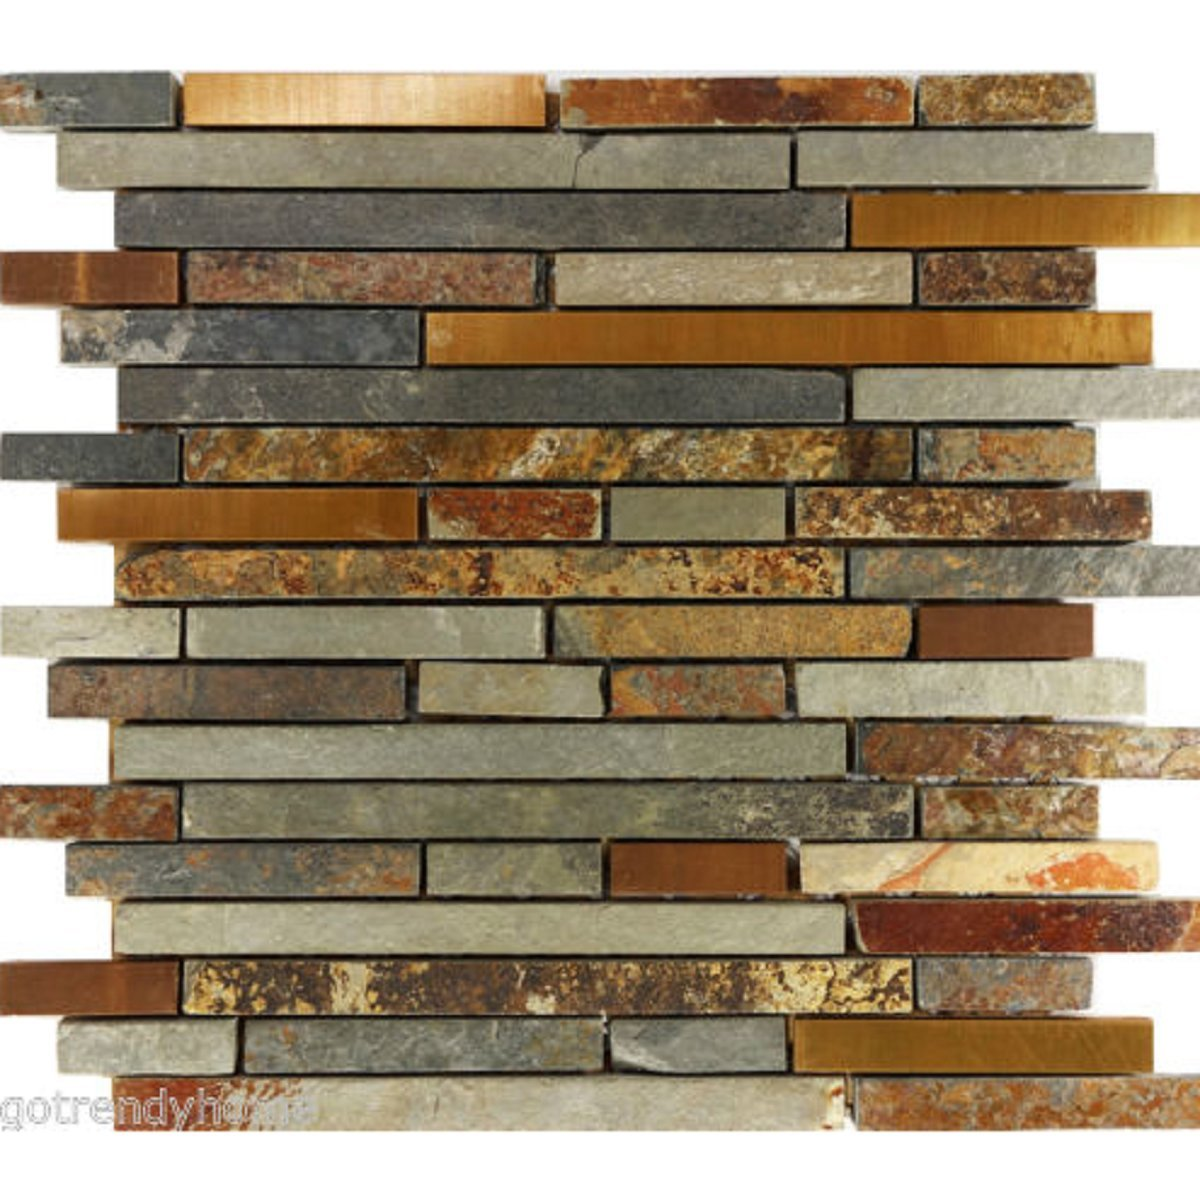 USA Premium Store 10SF Rustic Copper Linear Natural Slate Blend Mosaic Tile Kitchen Backsplash Spa by USA Premium Store